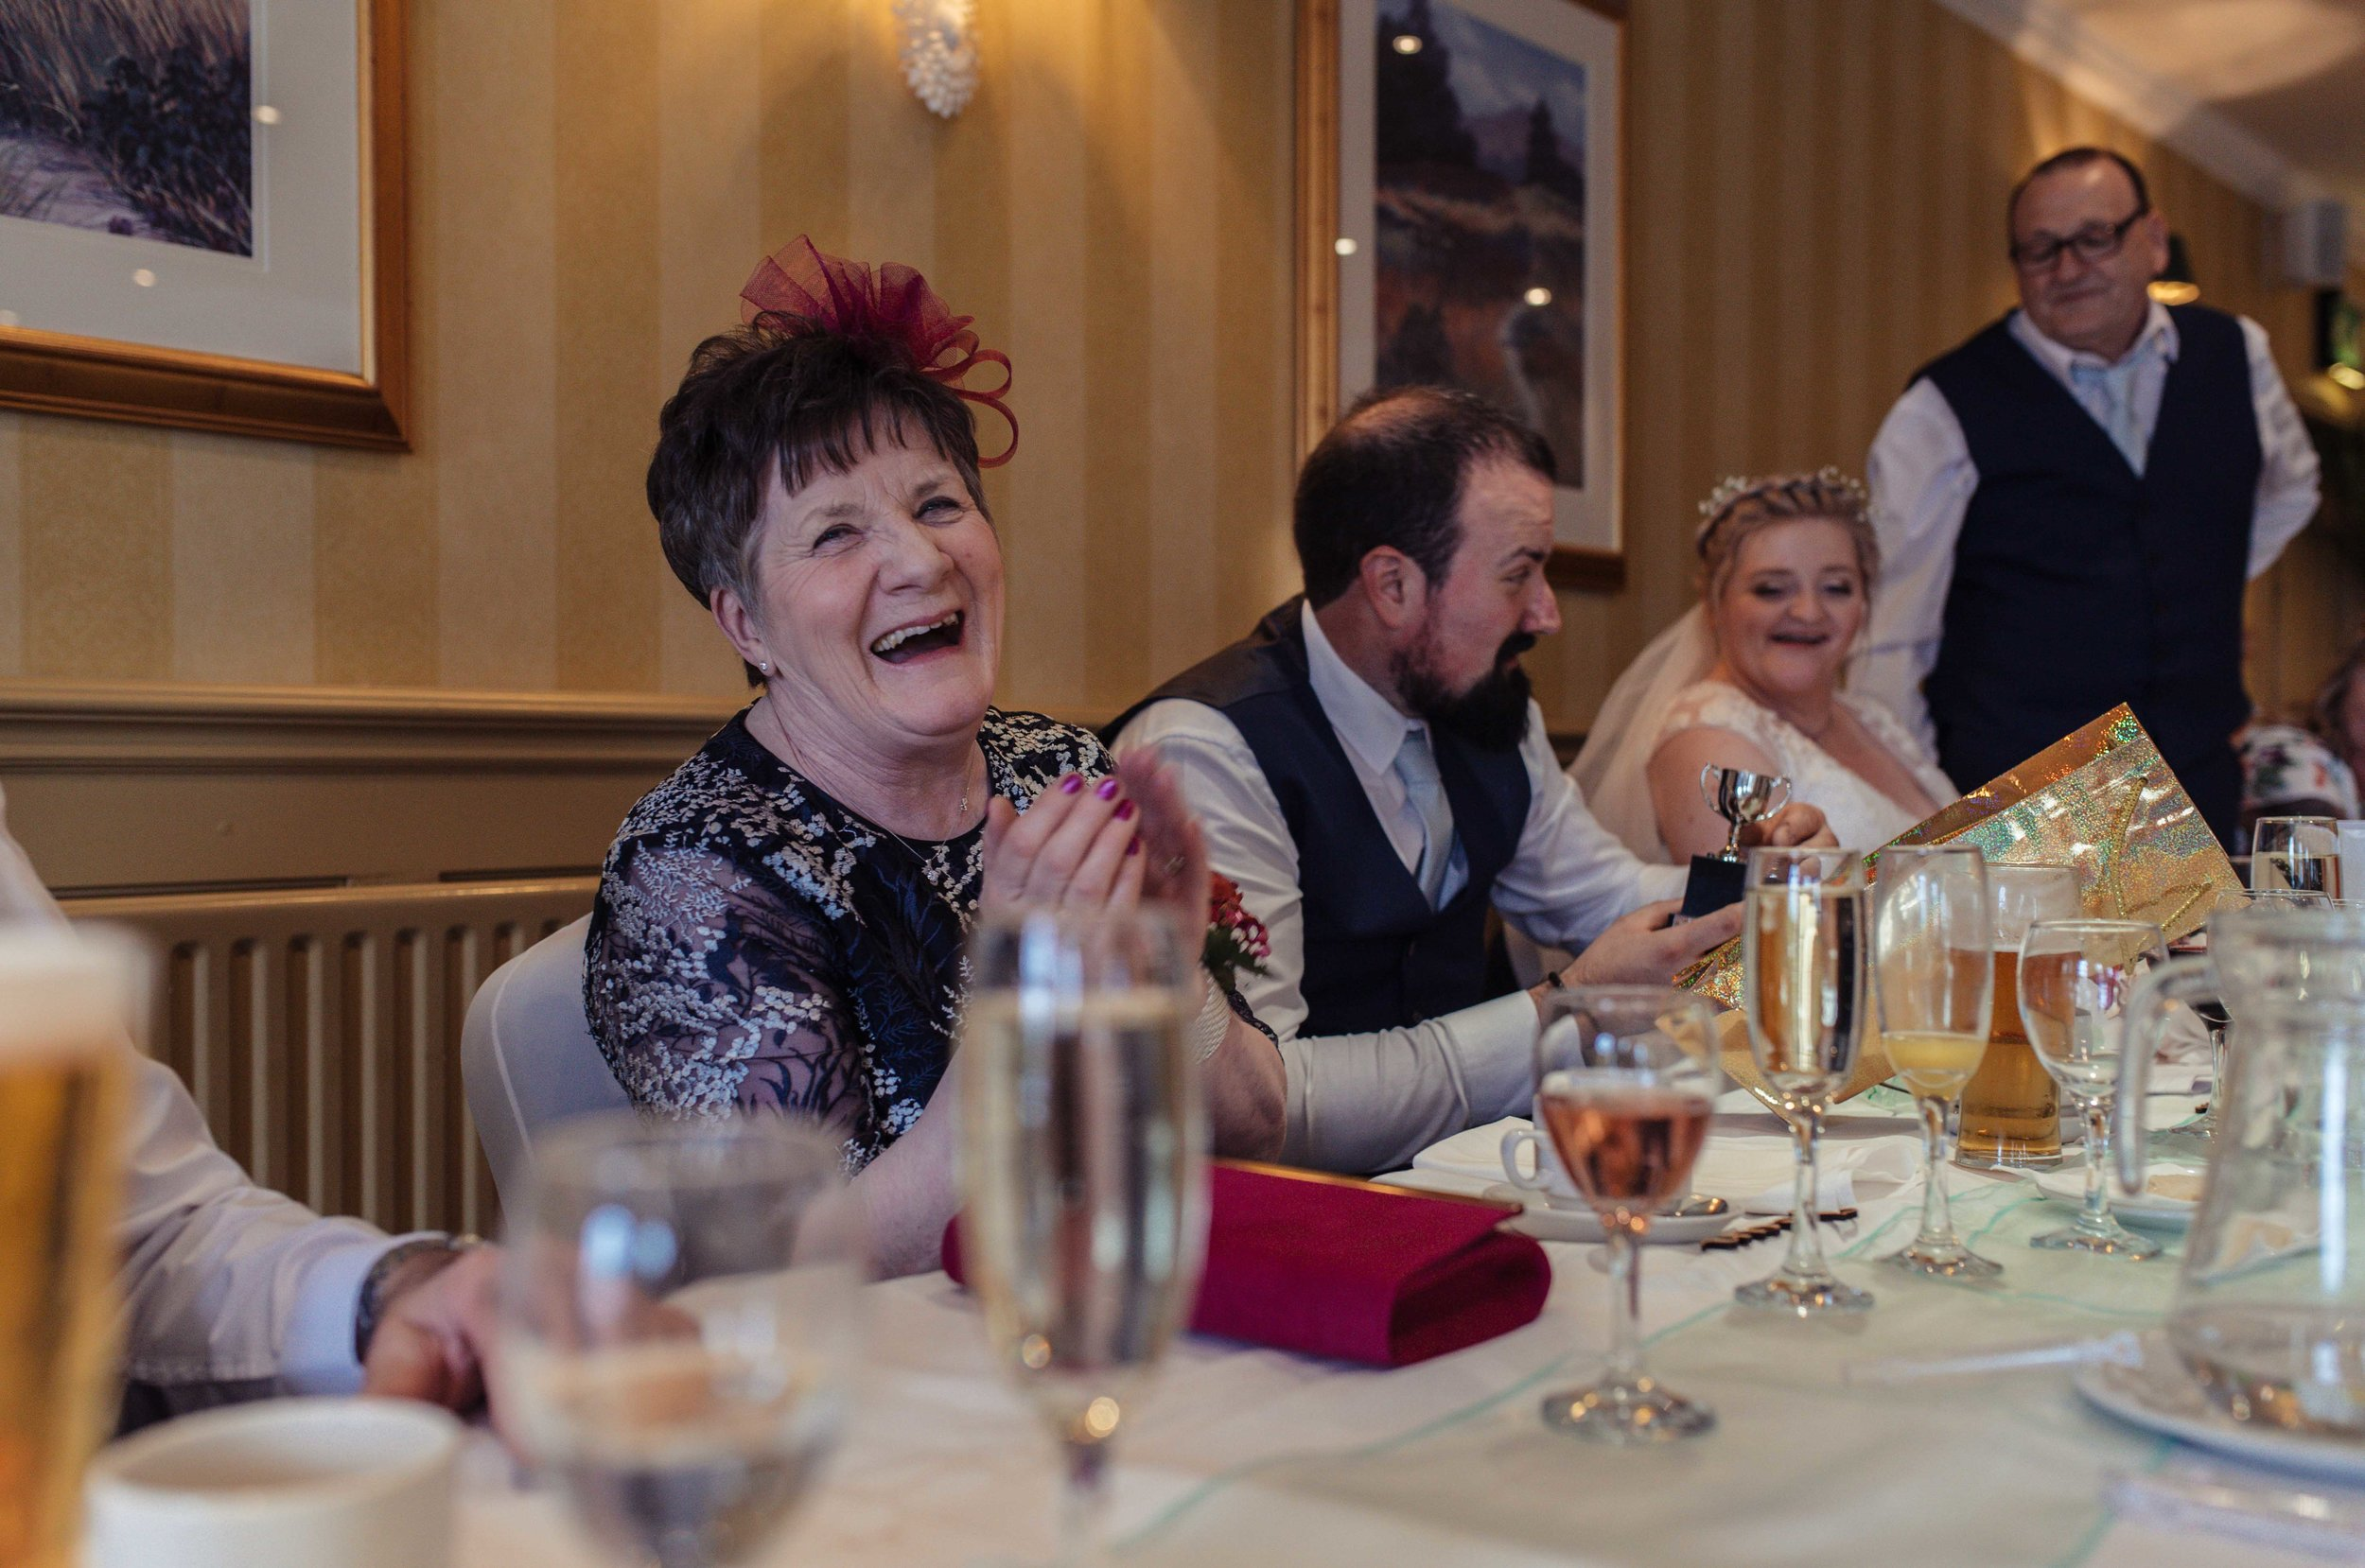 The grooms mother howls laughing during the speeches